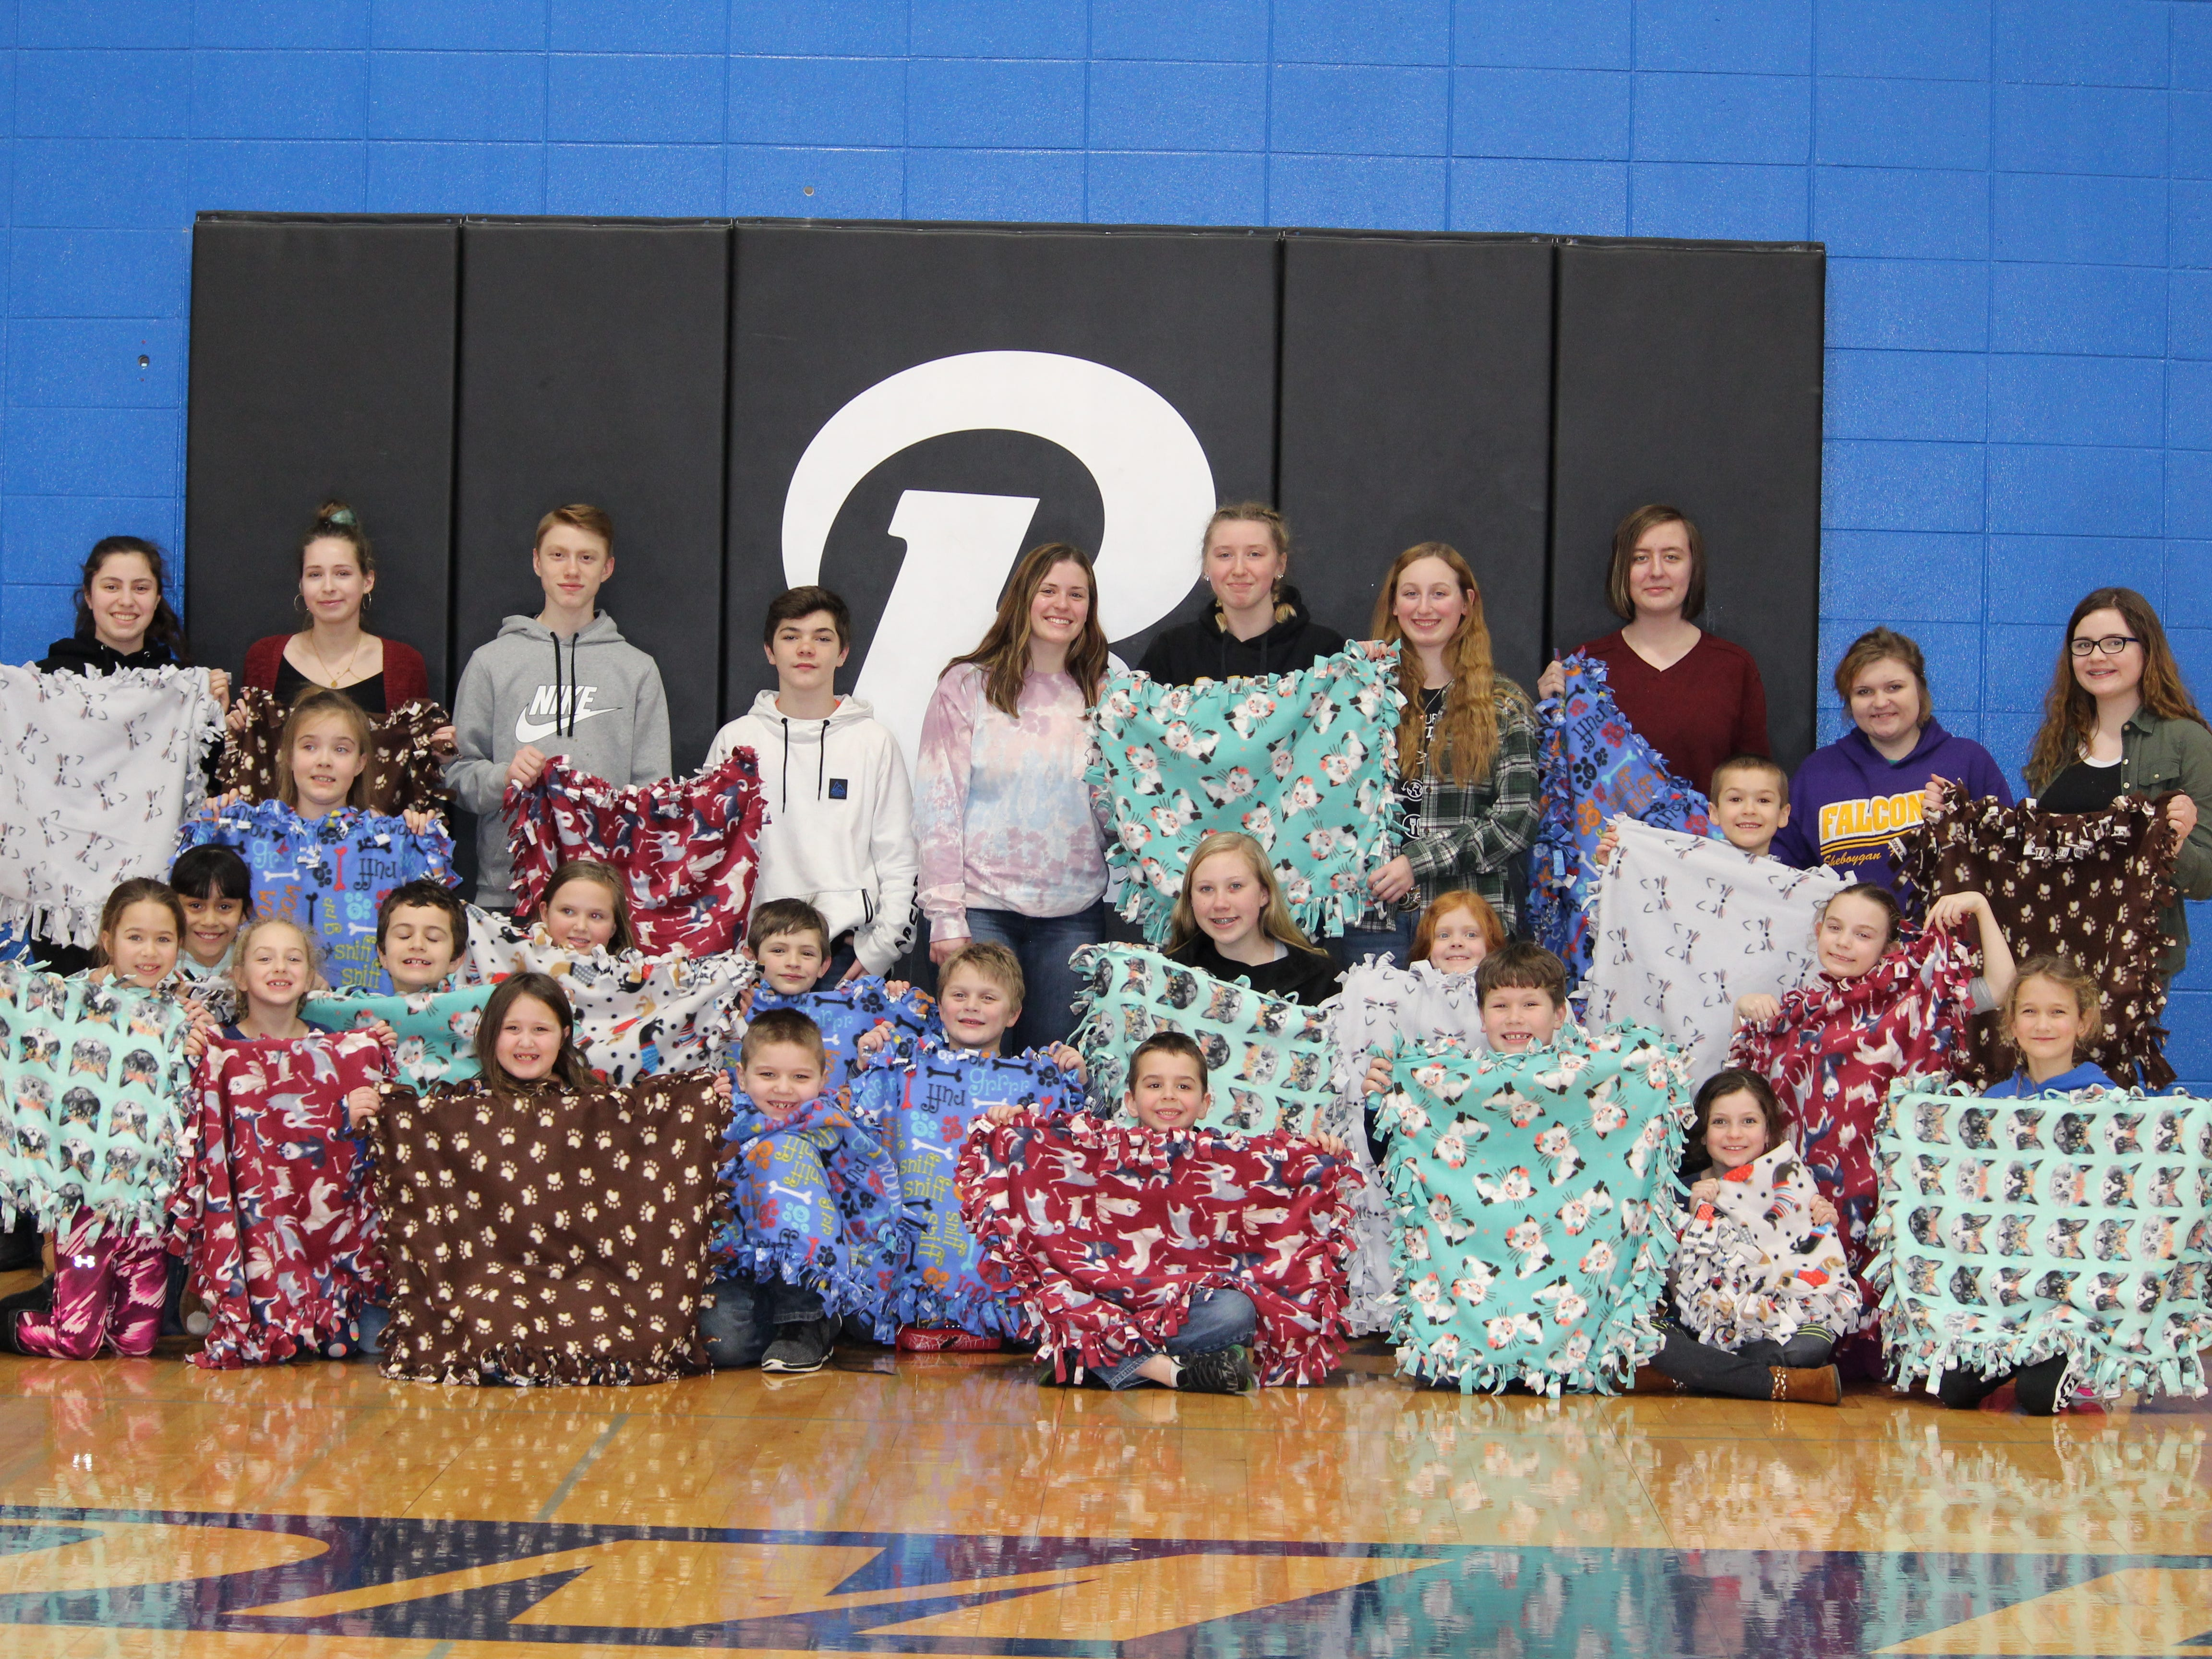 Students participated in a variety of service activities, while also leading elementary students to participate in accomplishing the projects. Some students made blankets for the local animal shelter.